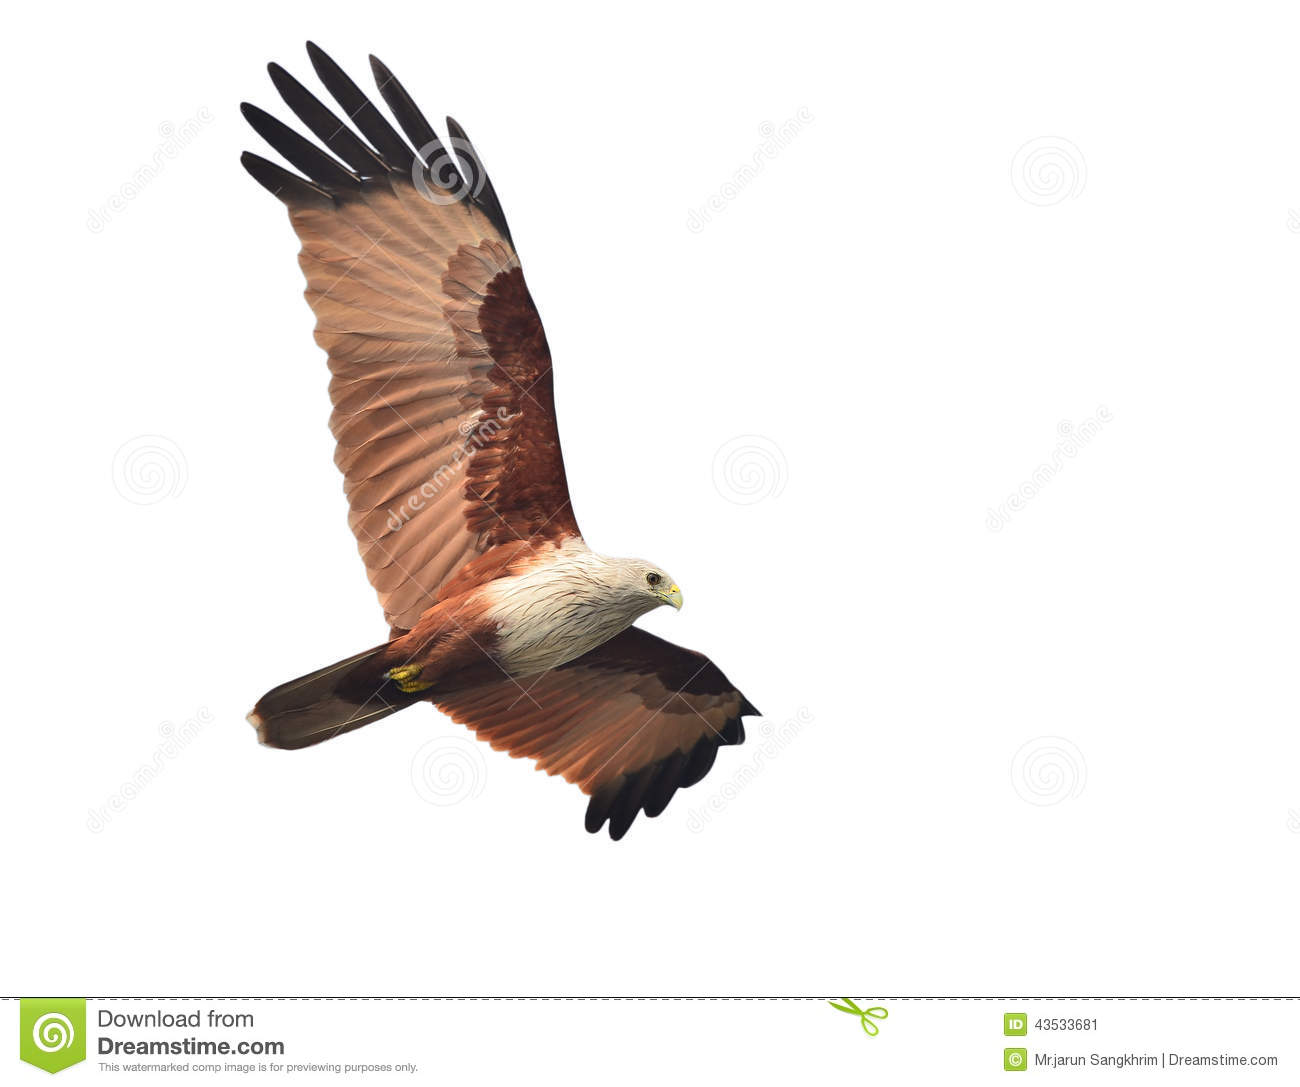 Brahminy Kite clipart #16, Download drawings